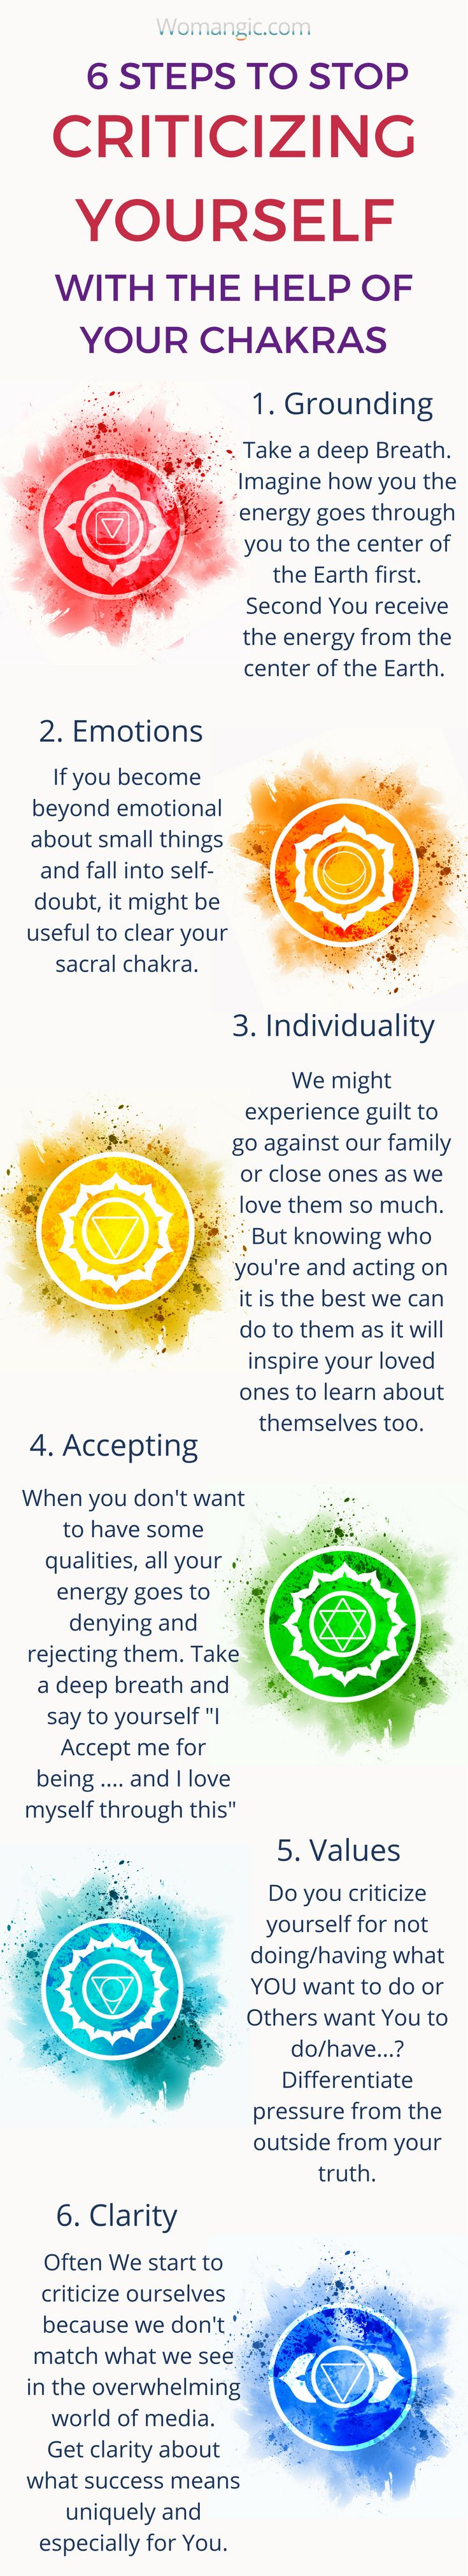 How to stop criticizing yourself. How to love yourself more. How to practice self-love. Self-criticism, positive mindset. Positive Self-image. Chakra, Chakra Balancing, Root, Sacral, Solar Plexus, Heart, Throat, Third Eye, Crown, Chakra meaning, Chakra affirmation, Chakra Mantra, Chakra Energy, Energy, Chakra articles, Chakra Healing, Chakra Cleanse, Chakra Illustration, Chakra Base, Chakra Images, Chakra Signification, Anxiety, Anxiety Relief, Anxiety Help, Anxiety Social, Anxiety…